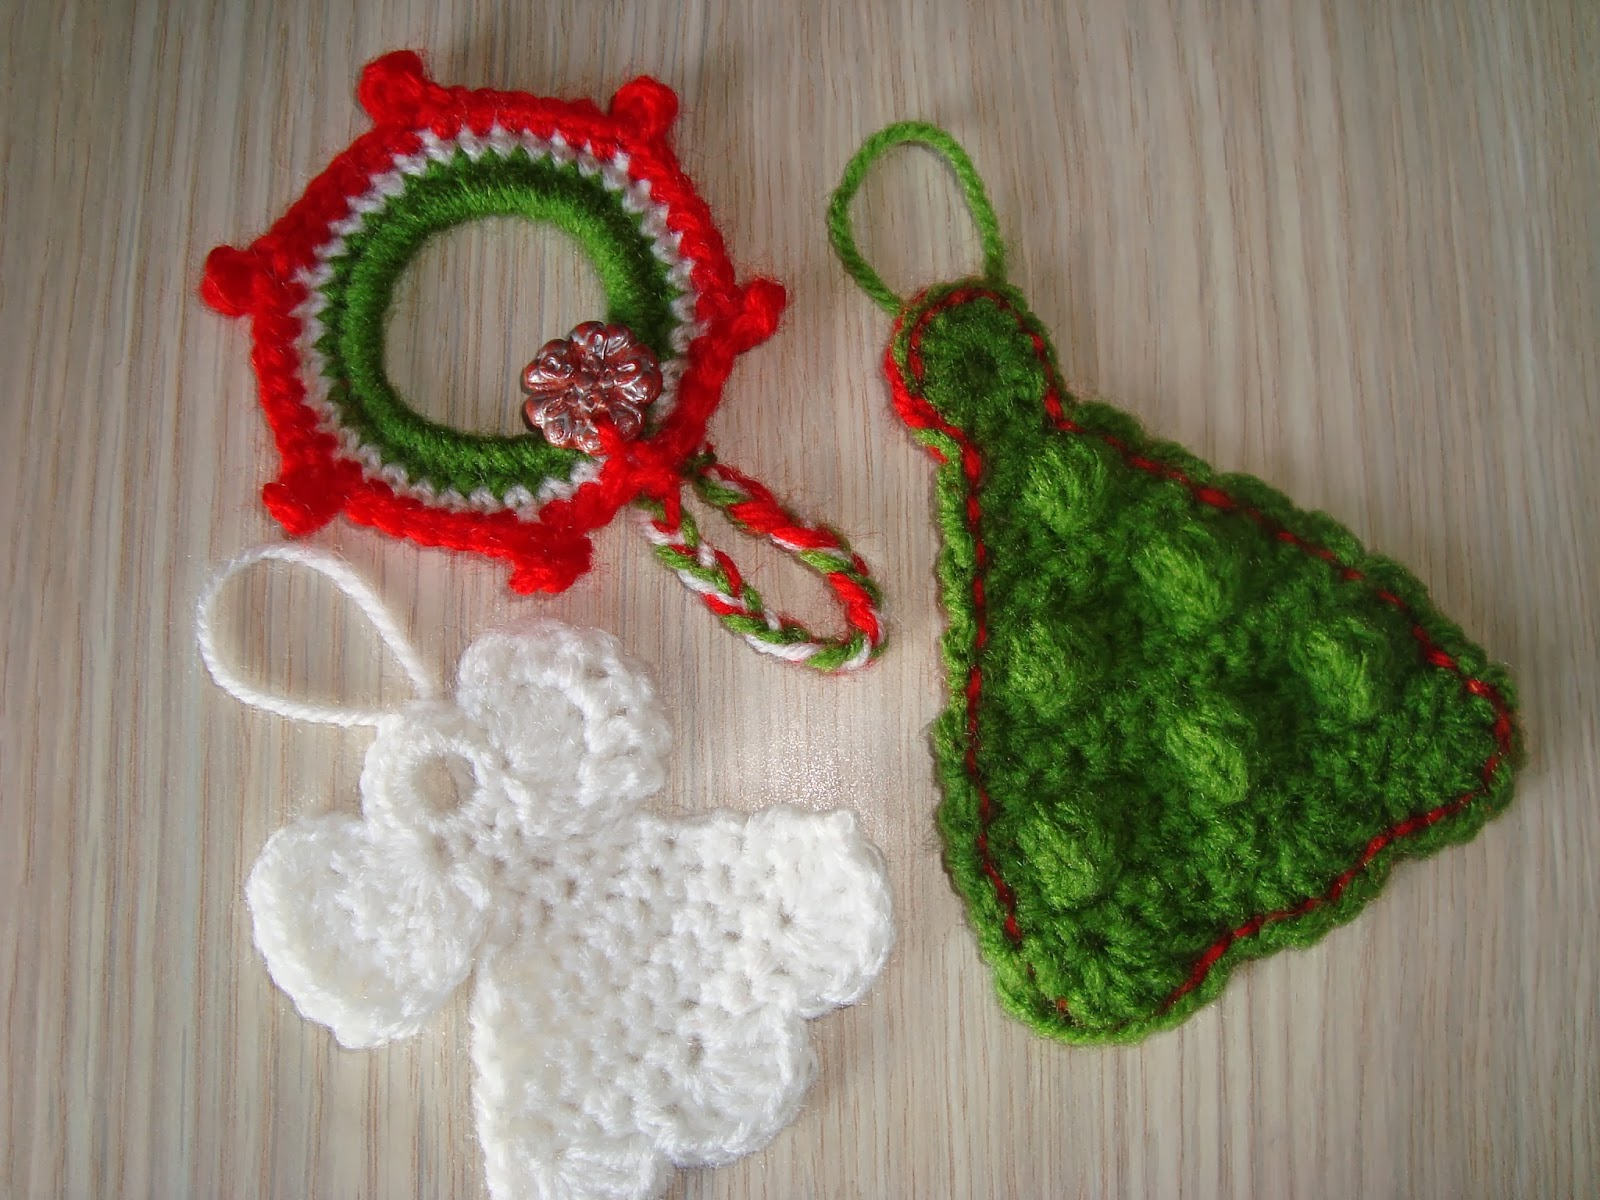 Handmade by Camelia: Pattern: Three Ornaments Crocheted ...